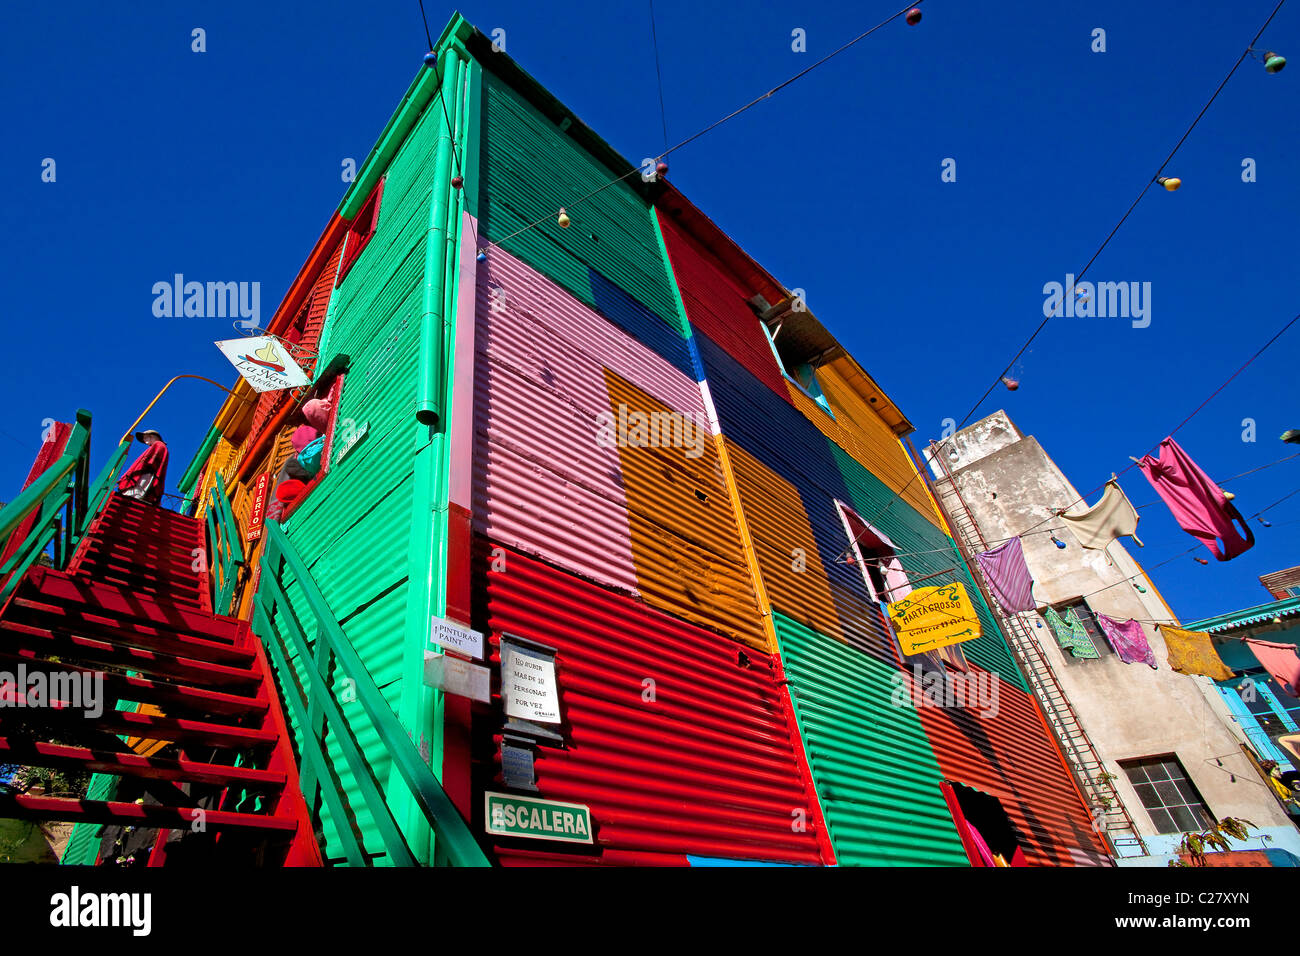 Color Plate Houses In The Neighborhood Of Caminito Buenos Aires